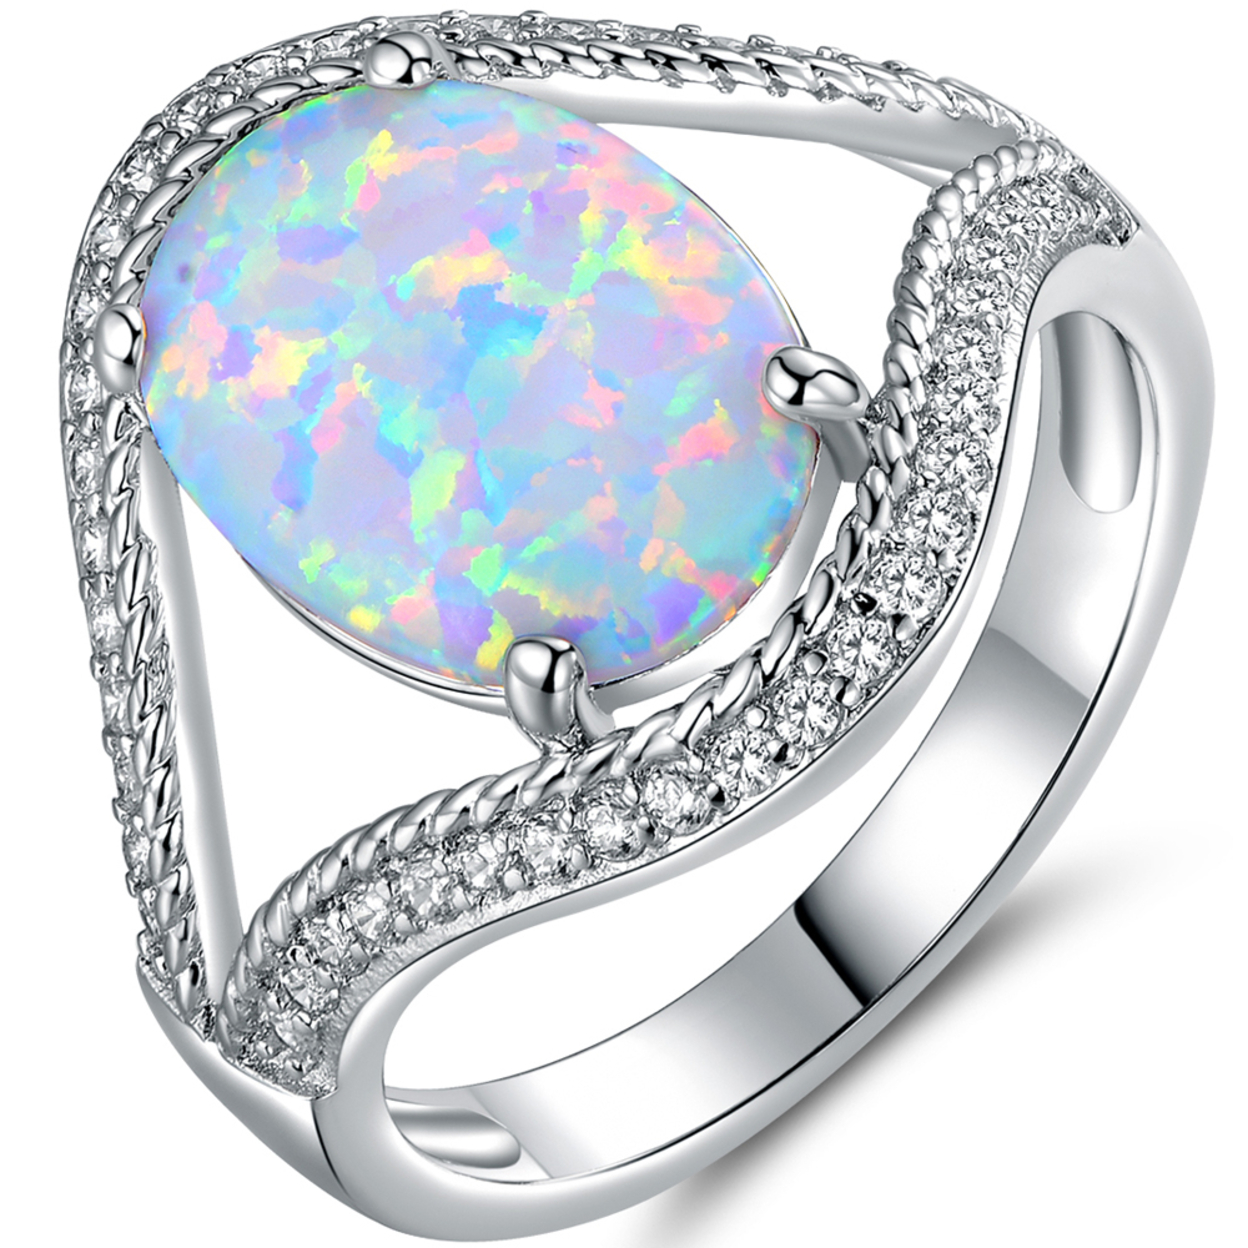 White Gold Plated Fire Opal & Cubic Zirconia Ring Size 5